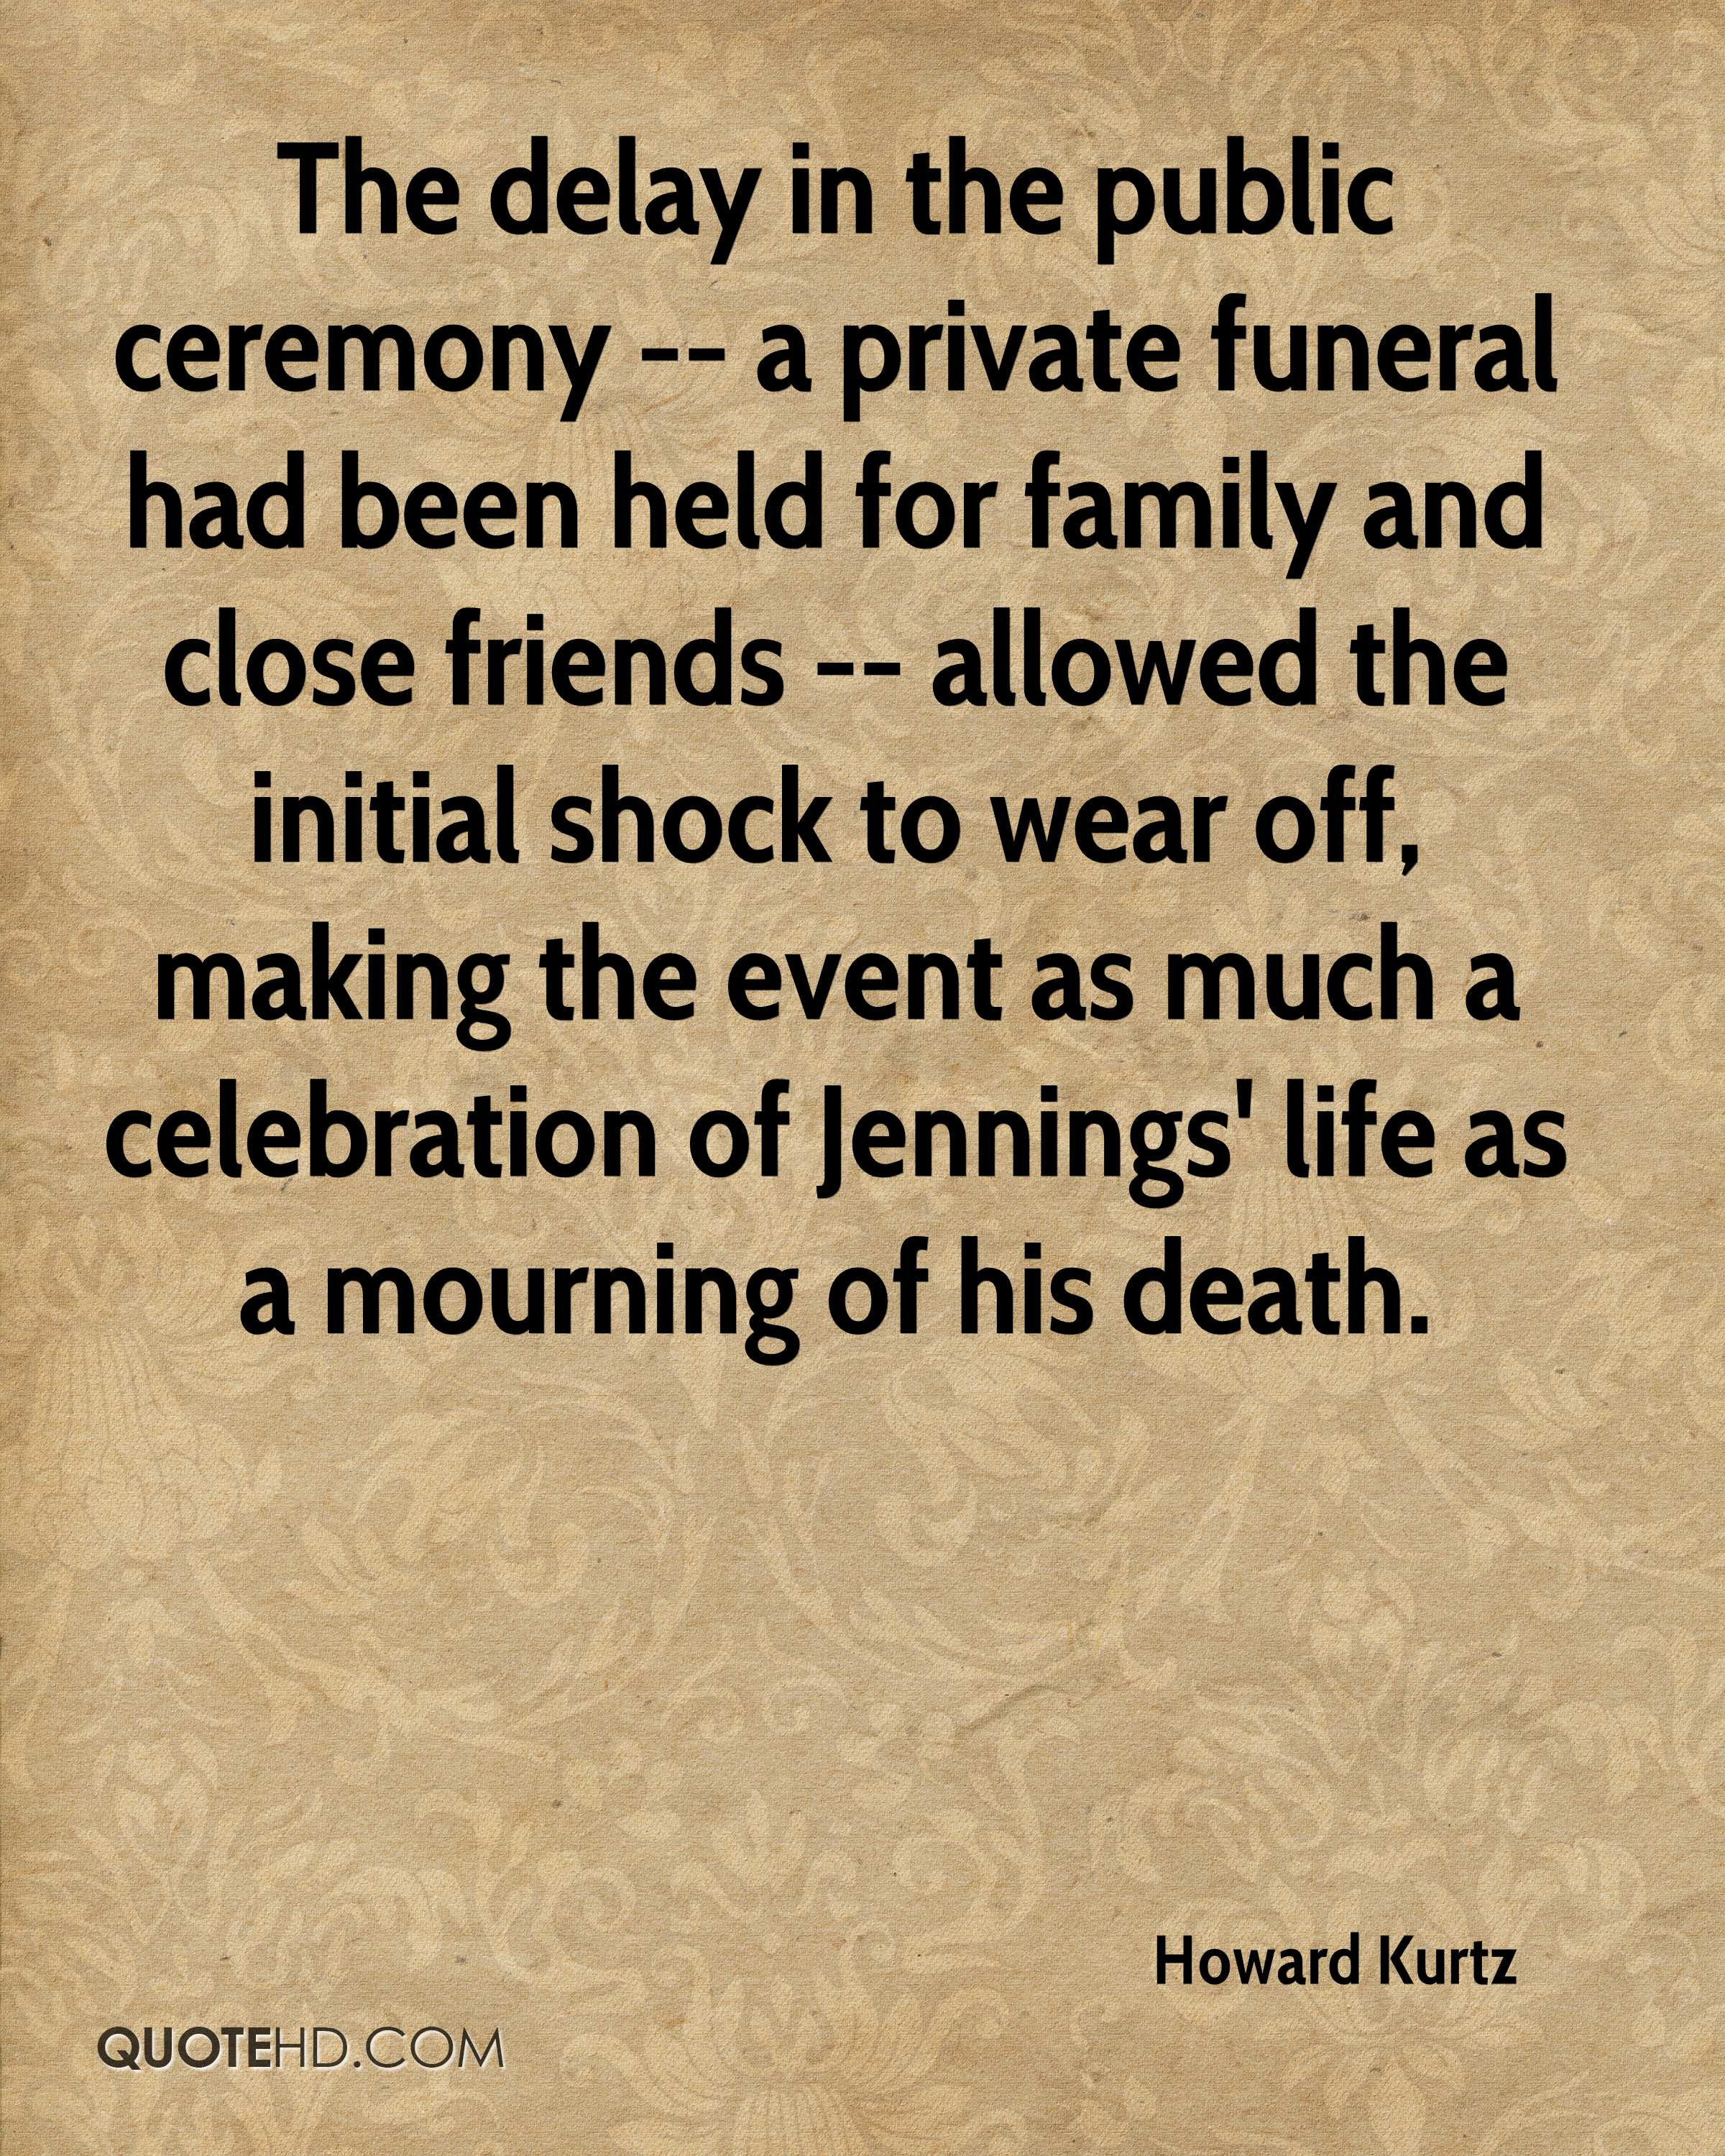 Celebration Of Life Quotes Howard Kurtz Death Quotes  Quotehd